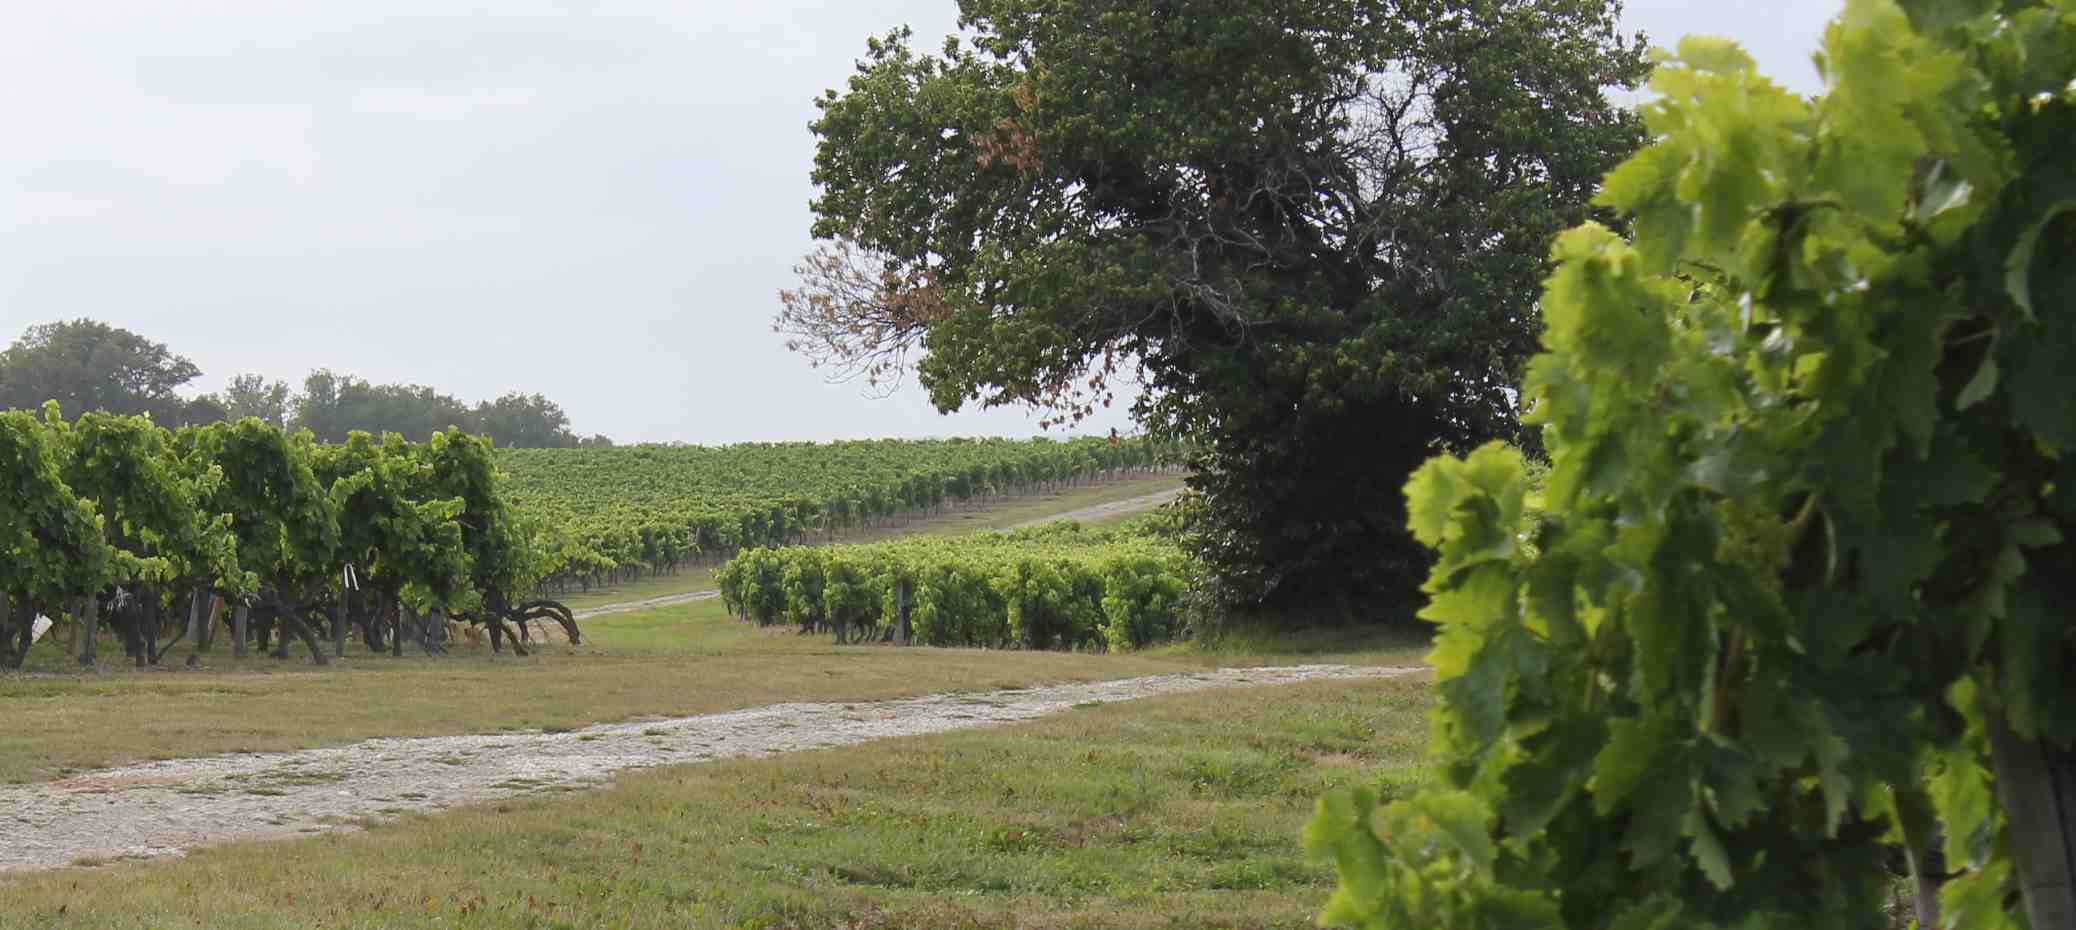 Vineyards at Le Maine Giraud